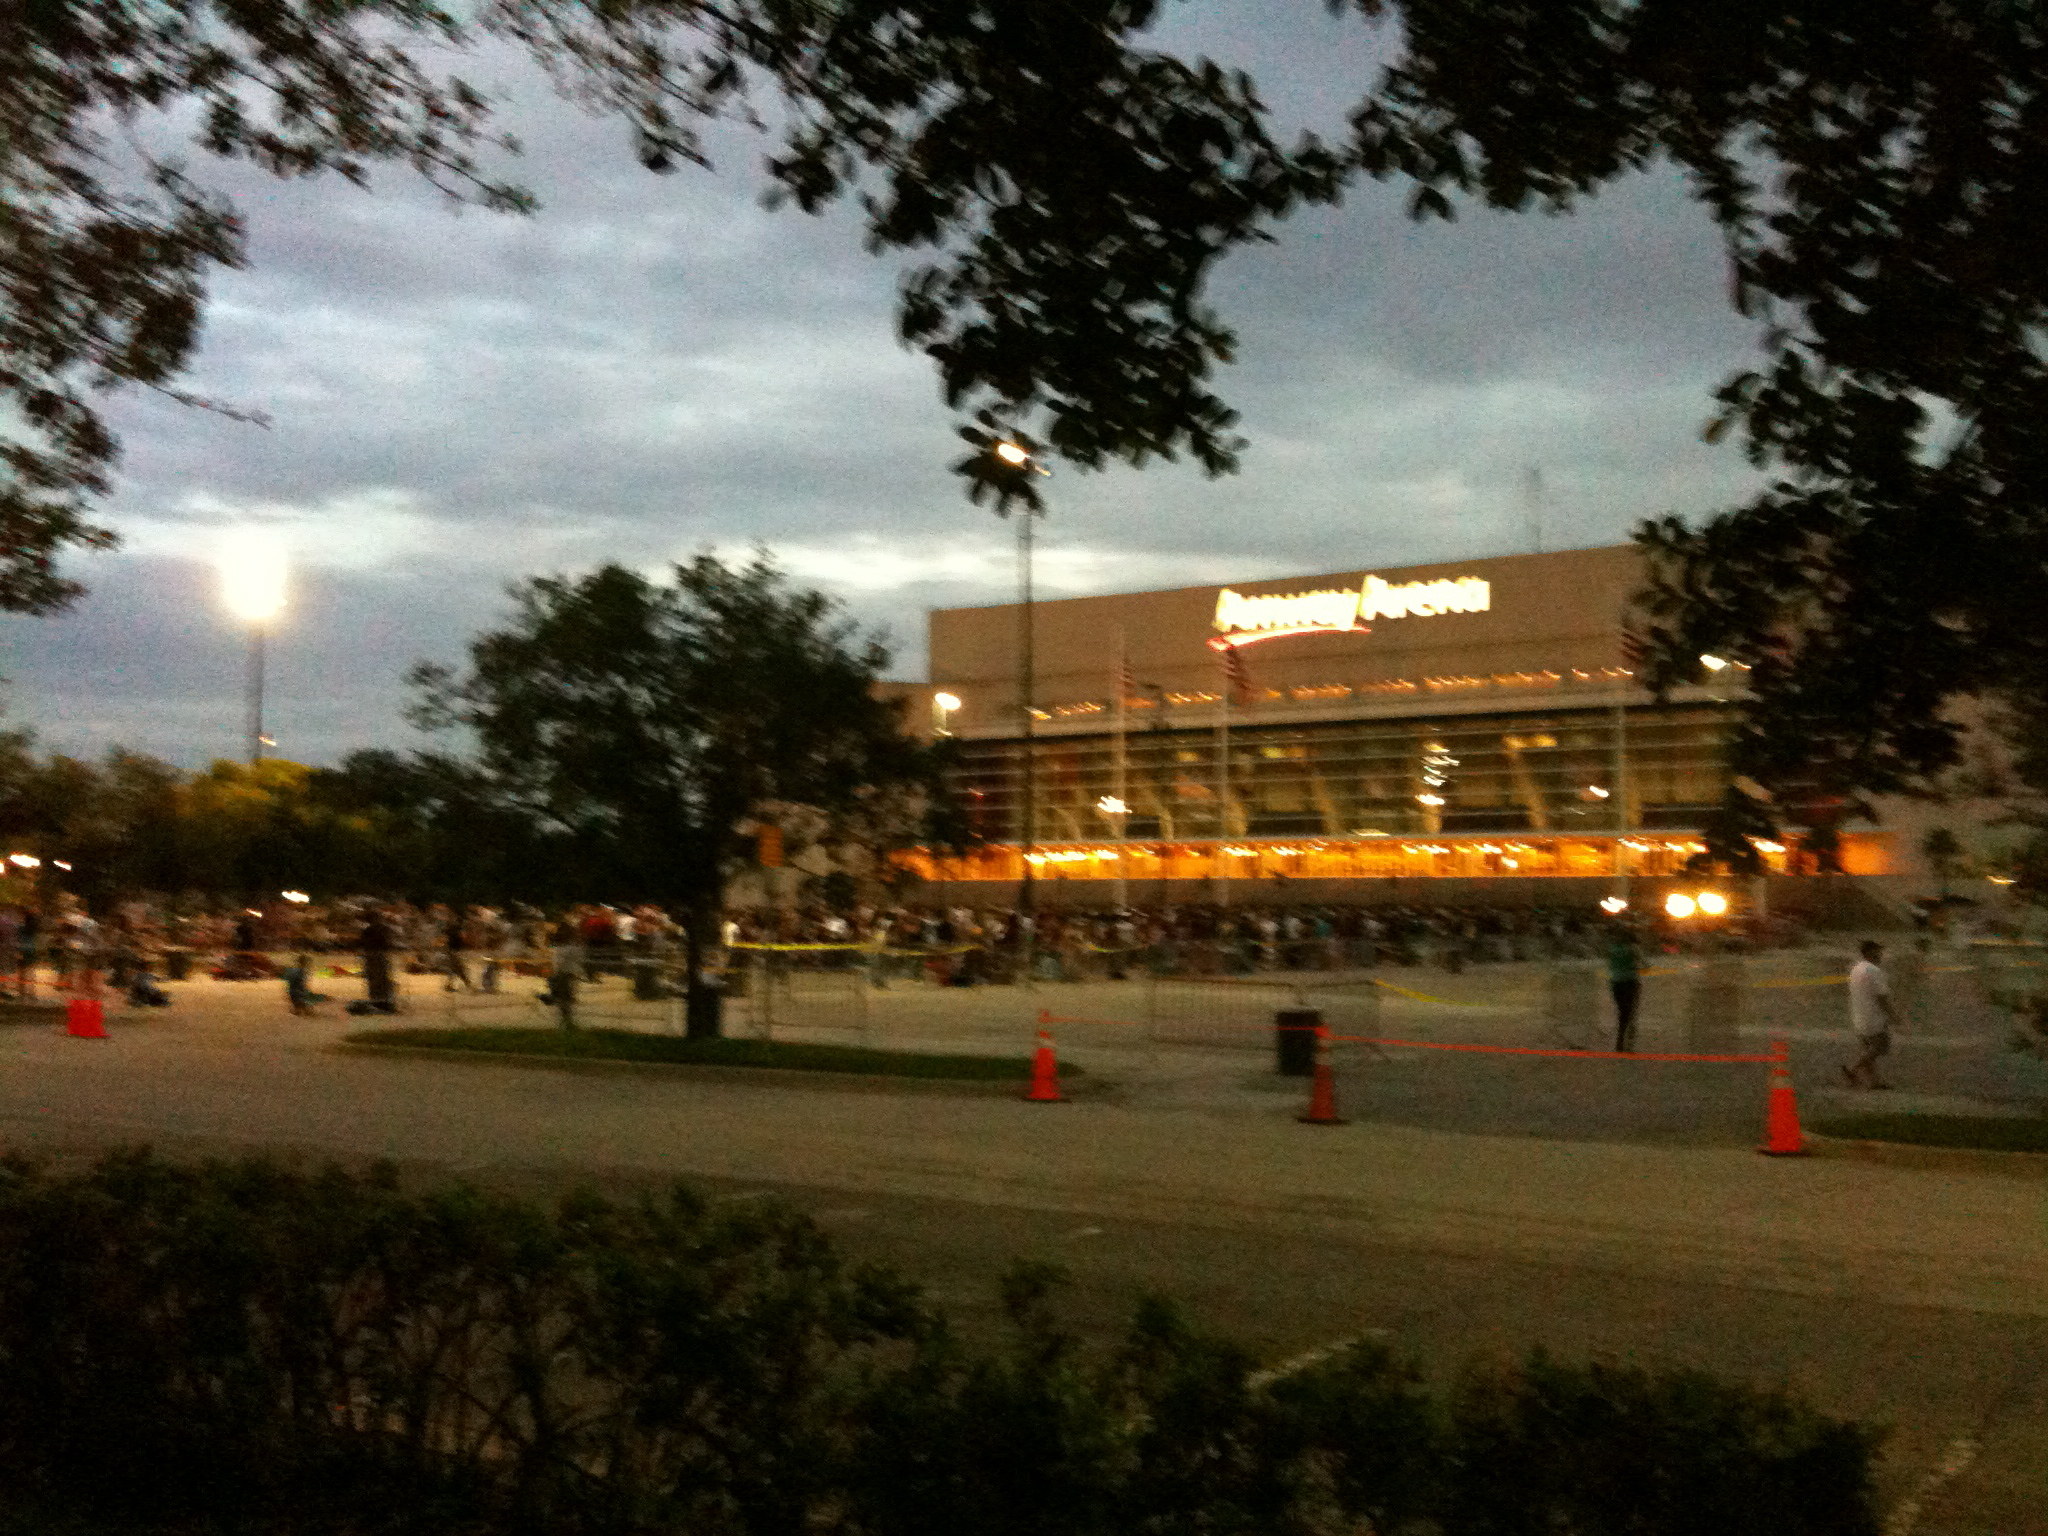 day breaks over the Amway Center